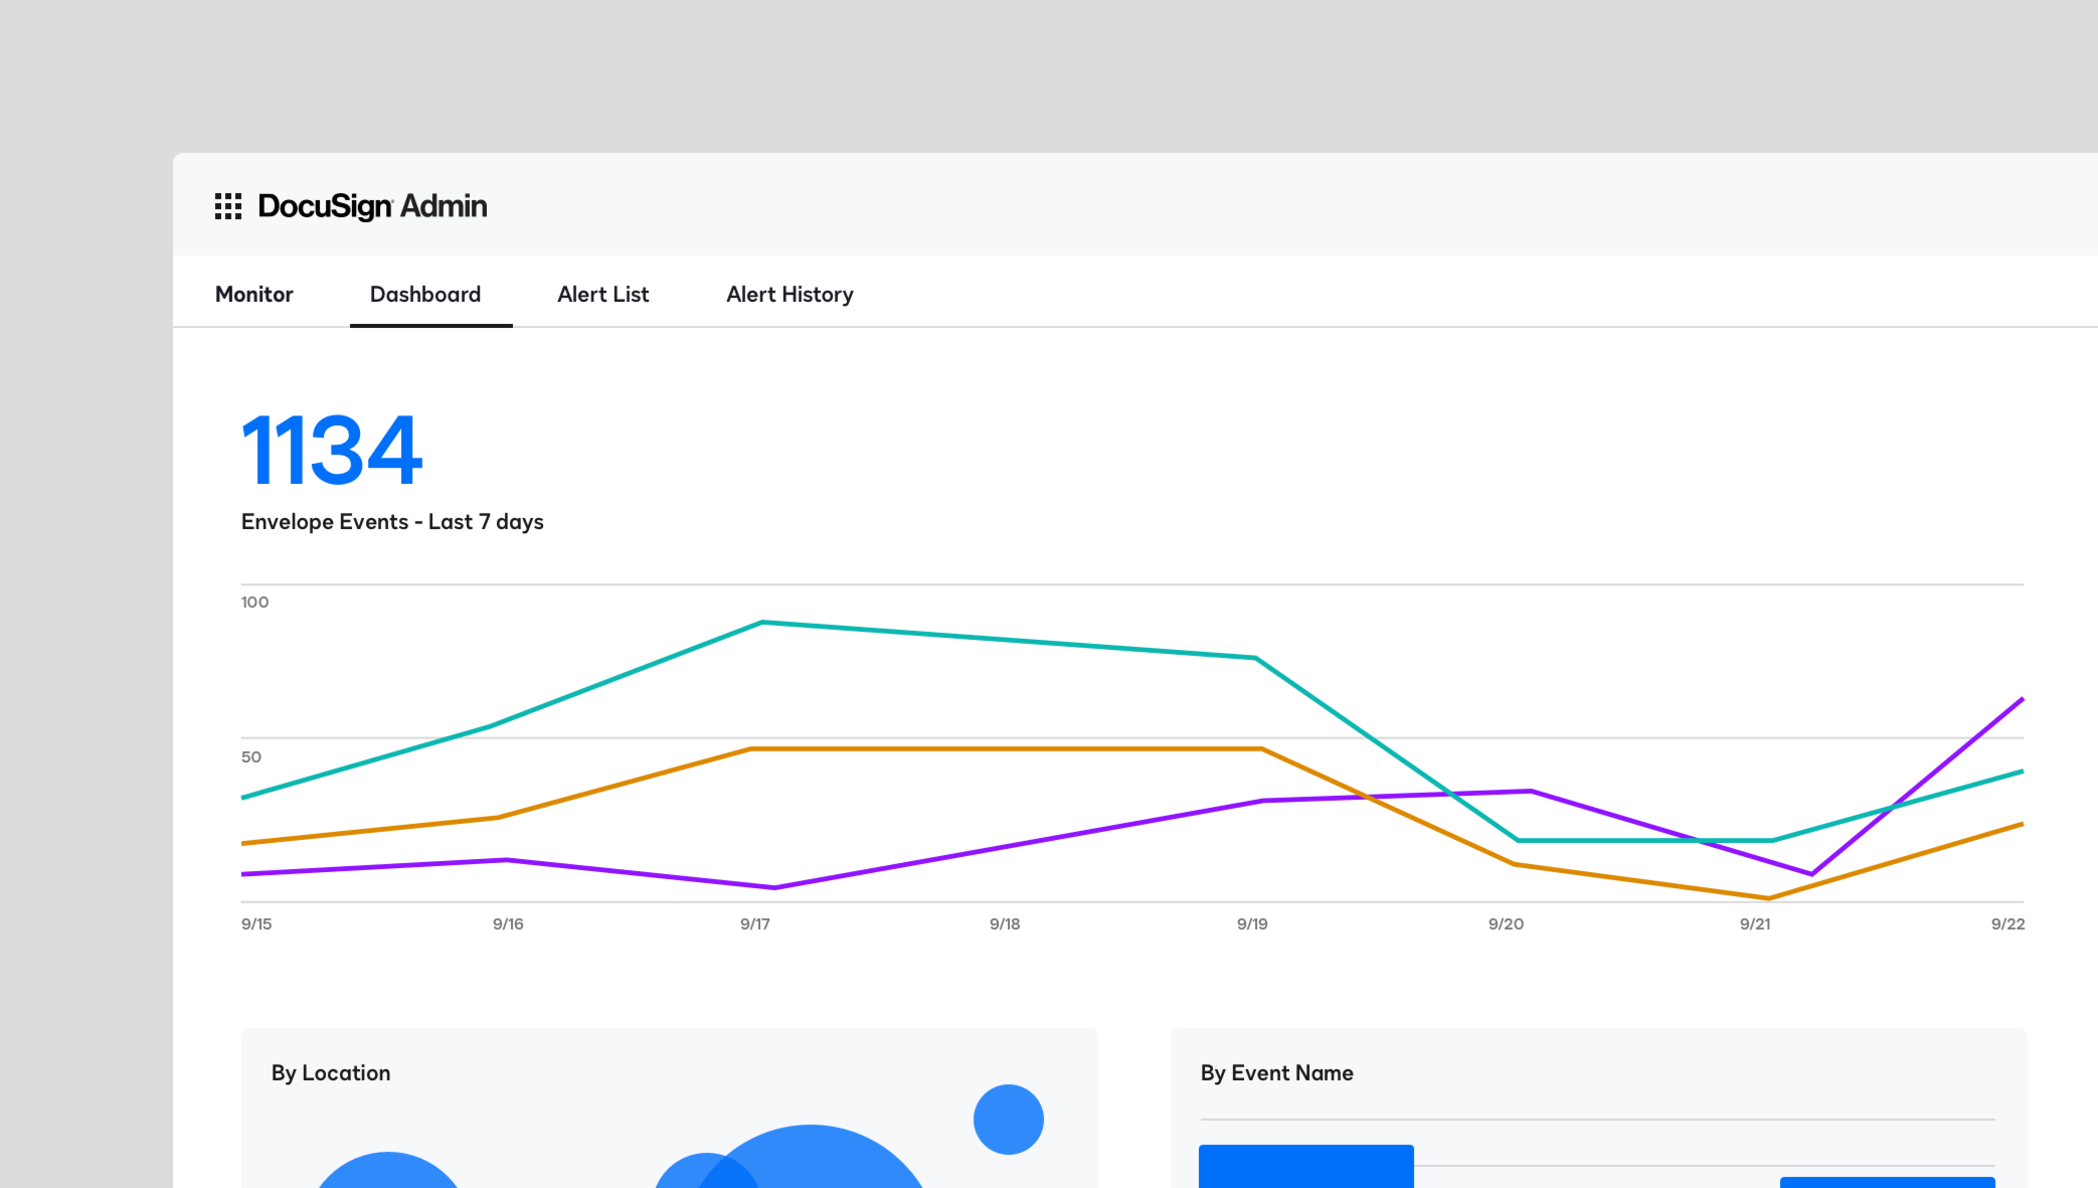 Line chart showing DocuSign Monitor event monitoring by envelope.